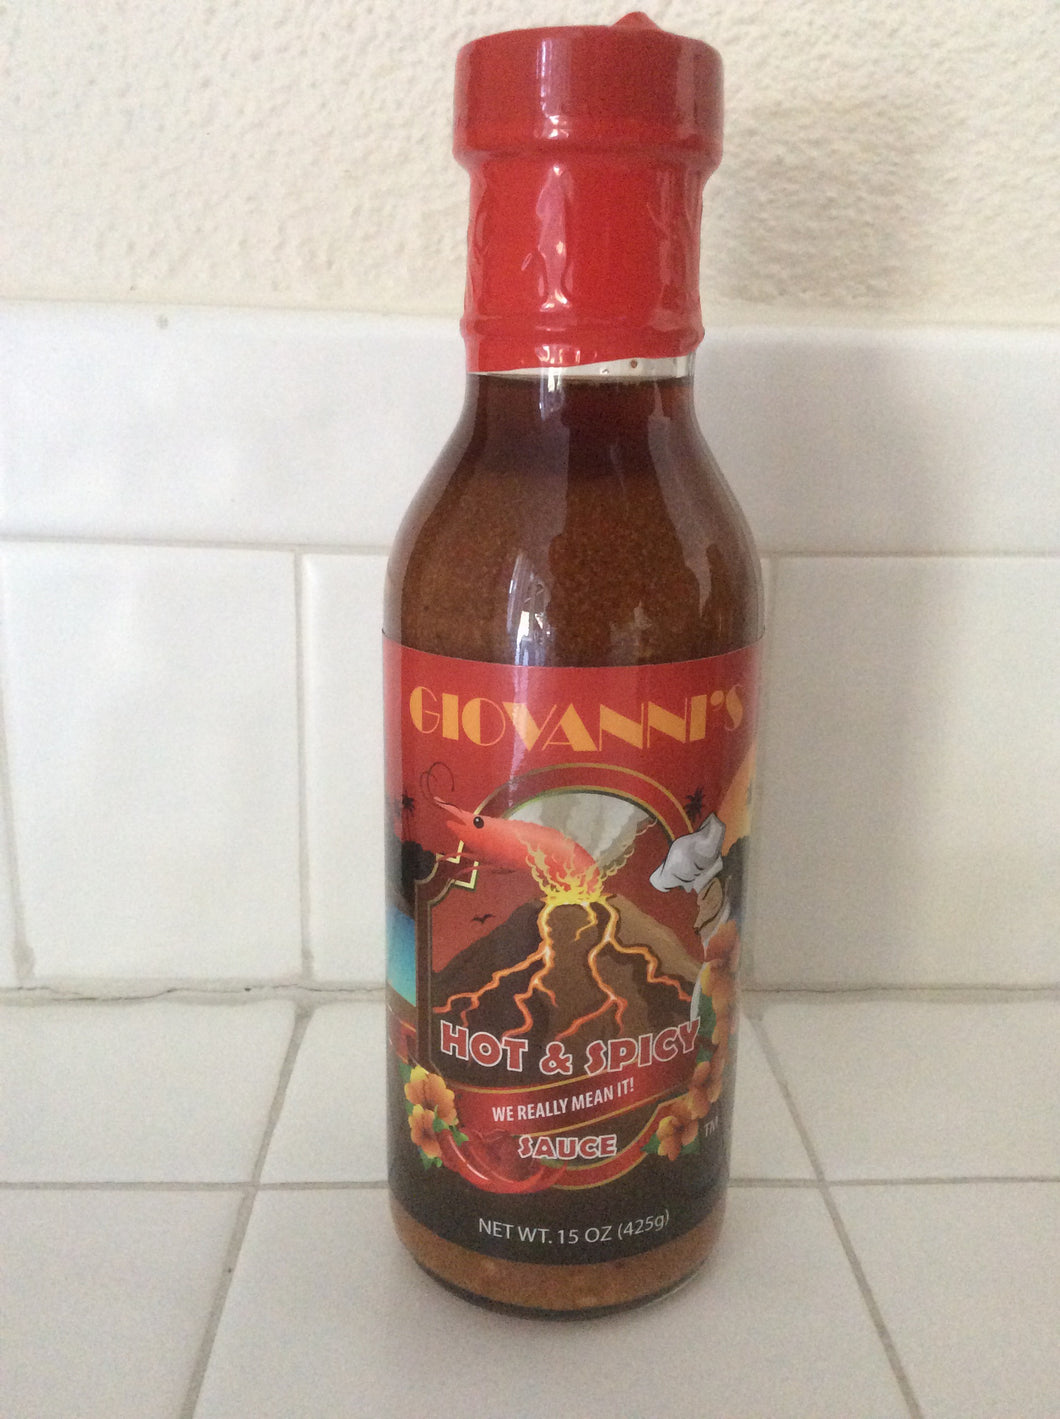 GIOVANNI'S HOT & SPICY